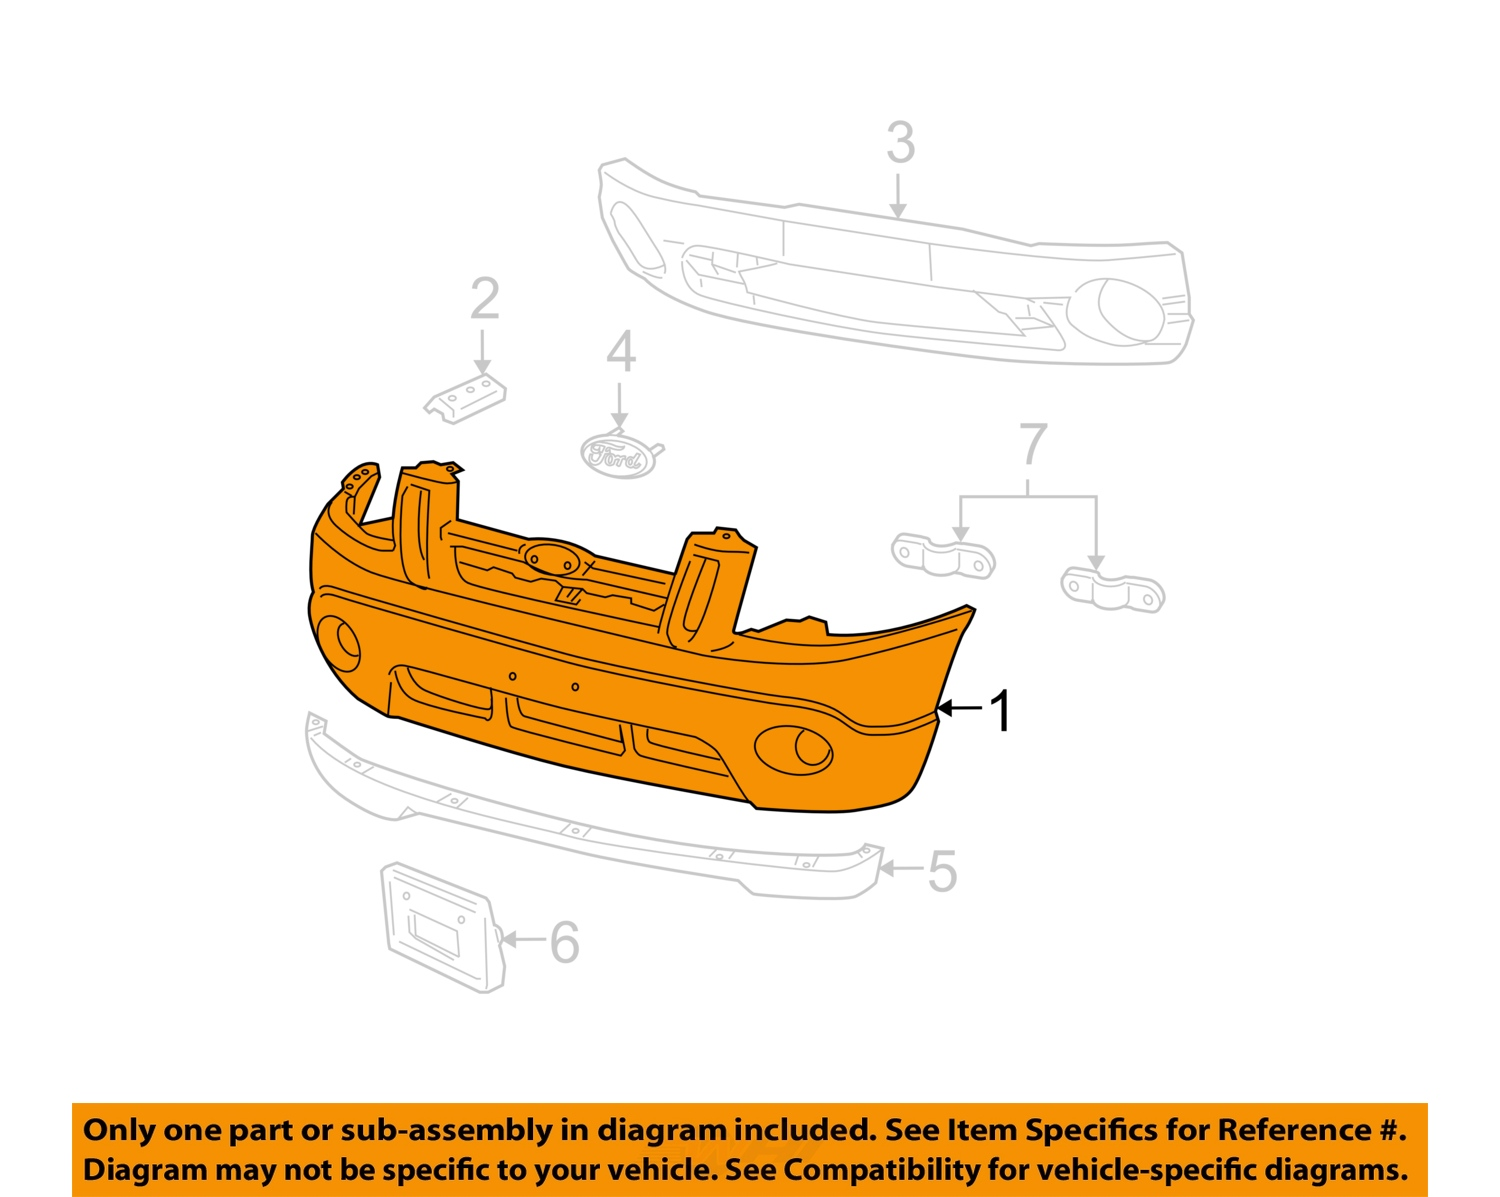 Ford Oem 04 05 Explorer Sport Trac Bumper Cover 4l5z17d957gaa 2005 Engine Diagram Image Is Loading